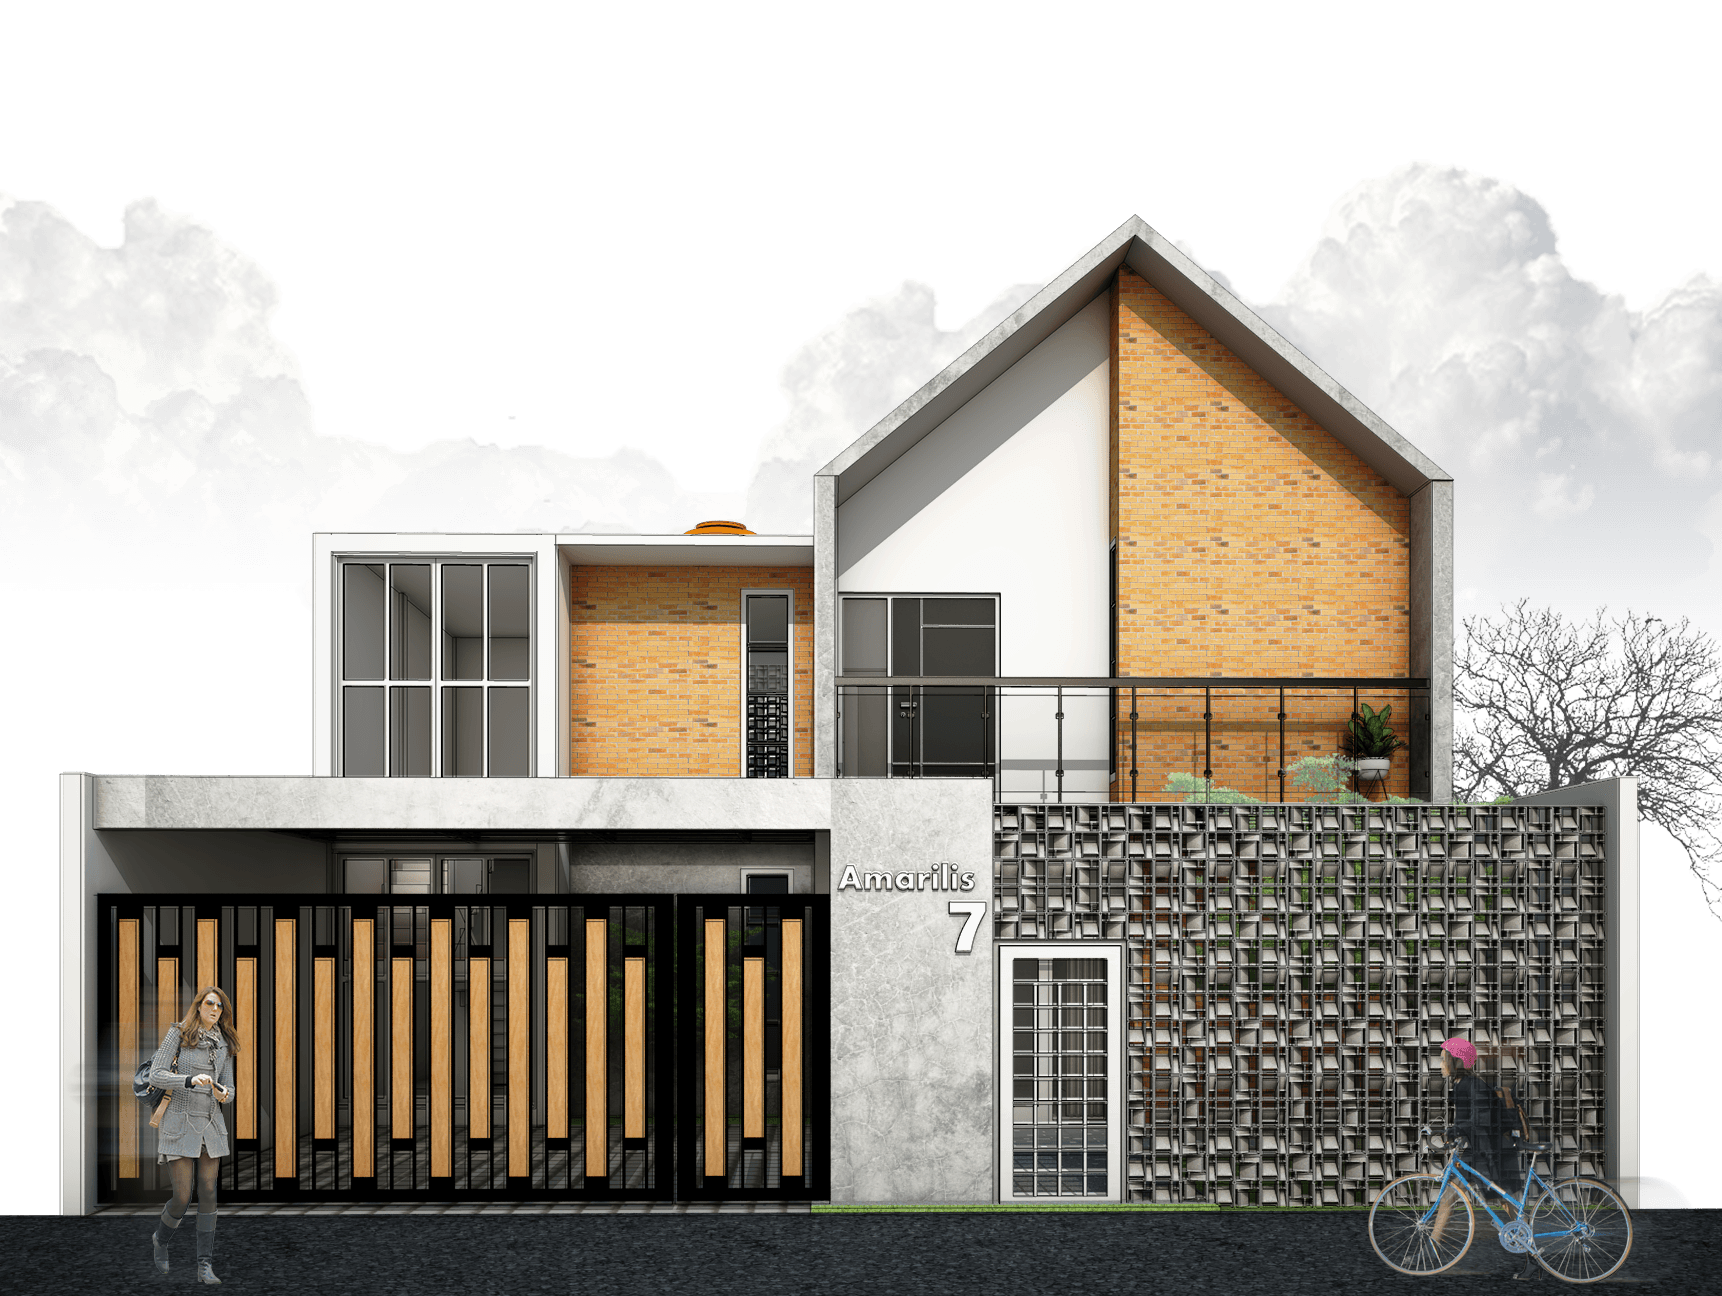 ASTABUMI ARCHITECT & INTERIOR DESIGN di Sleman